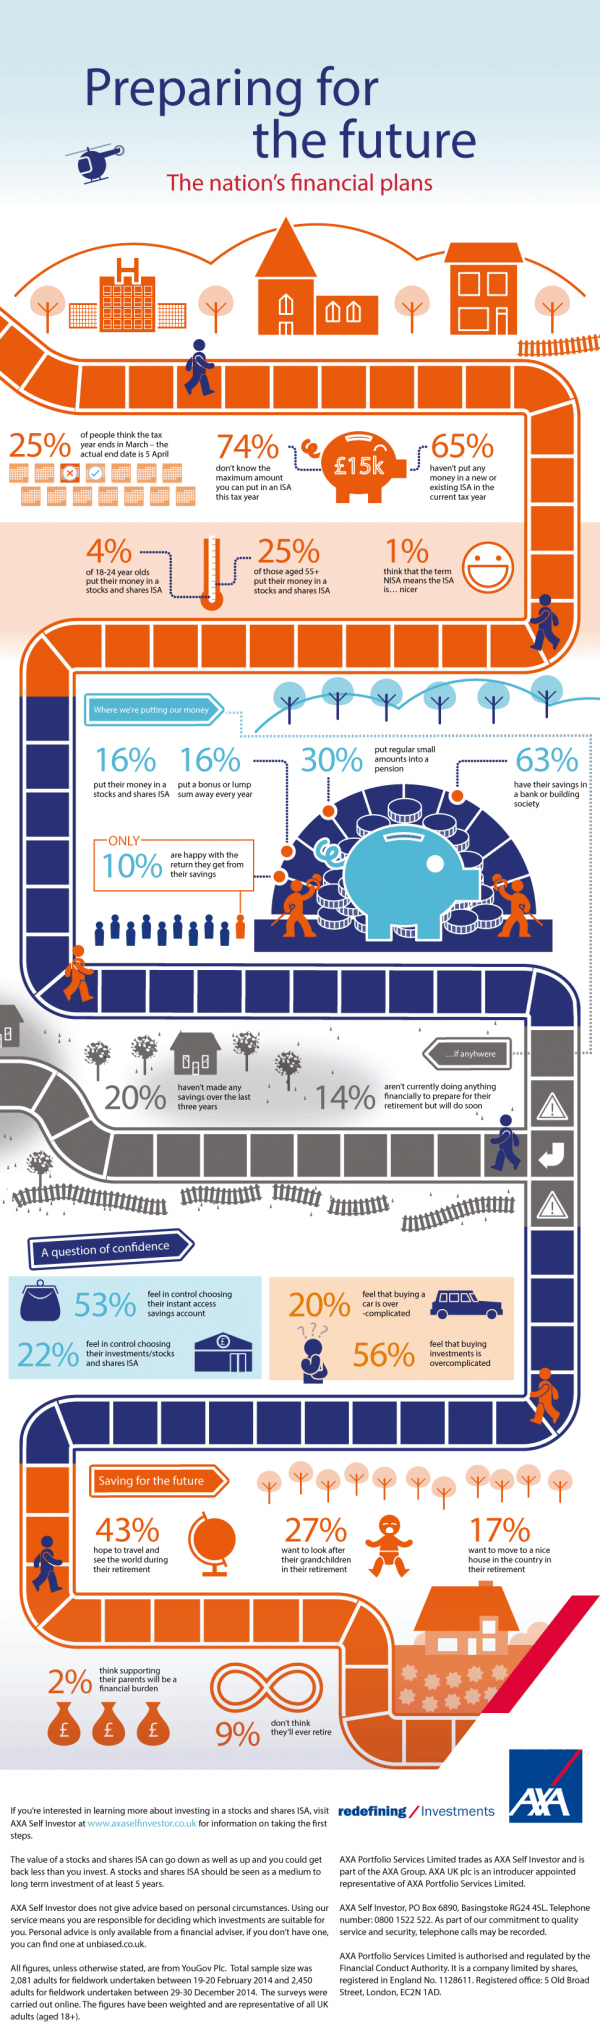 axa-self-investor-preparing-for-future-infographic-full